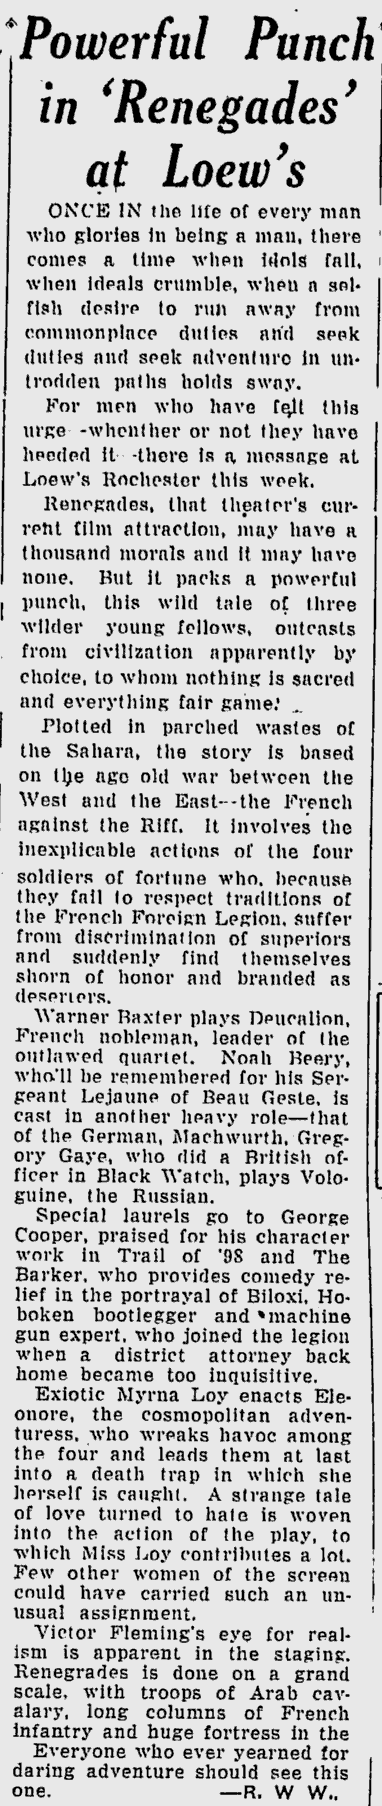 Renegades, Rochester Post Express Evening Journal, November 10, 1930